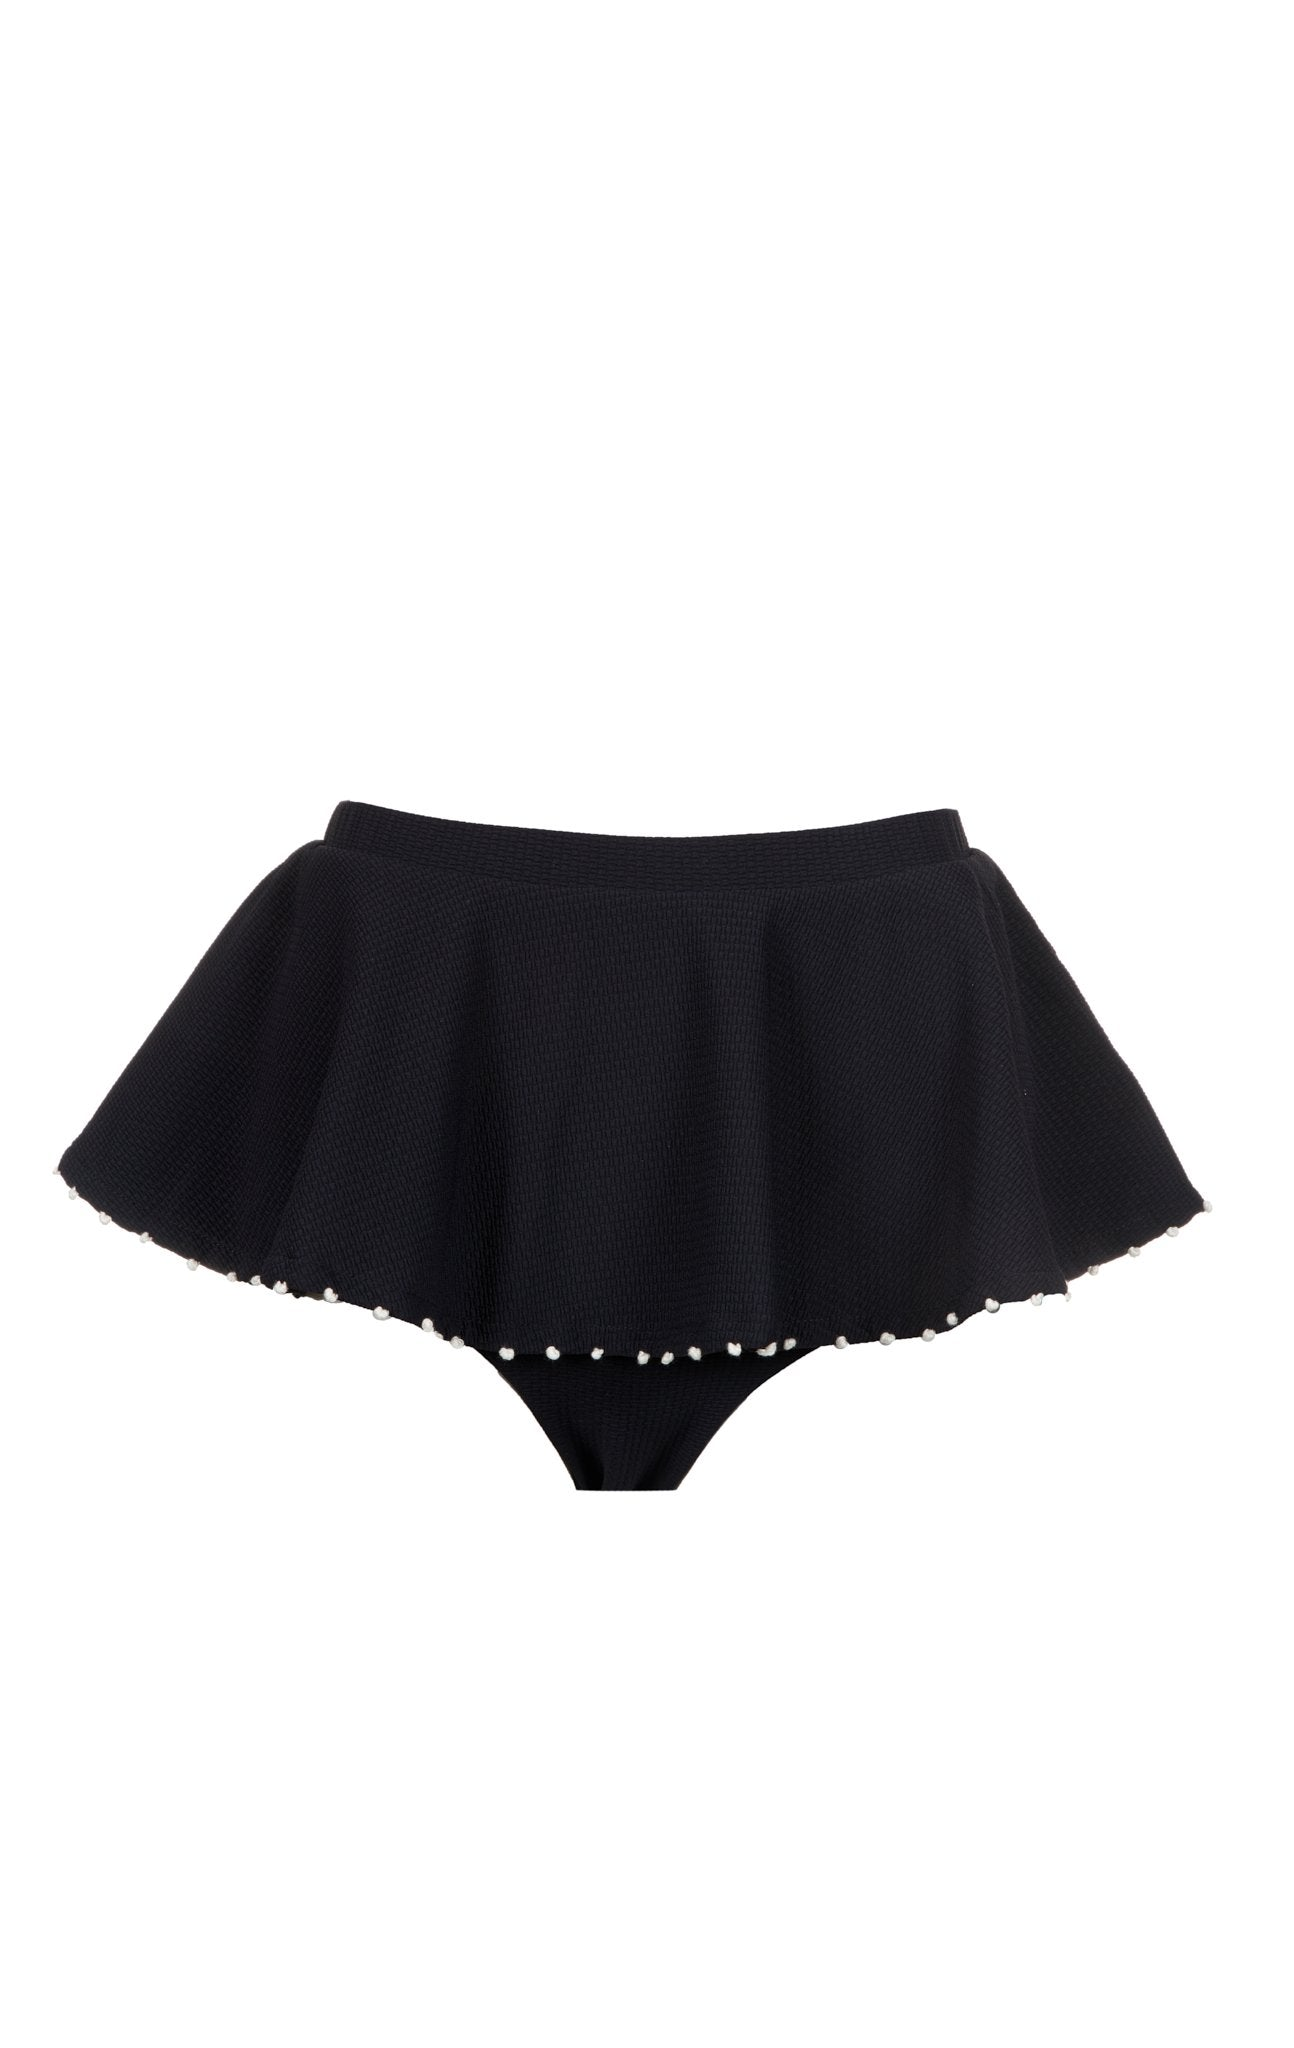 French Gramercy Bottom in Black